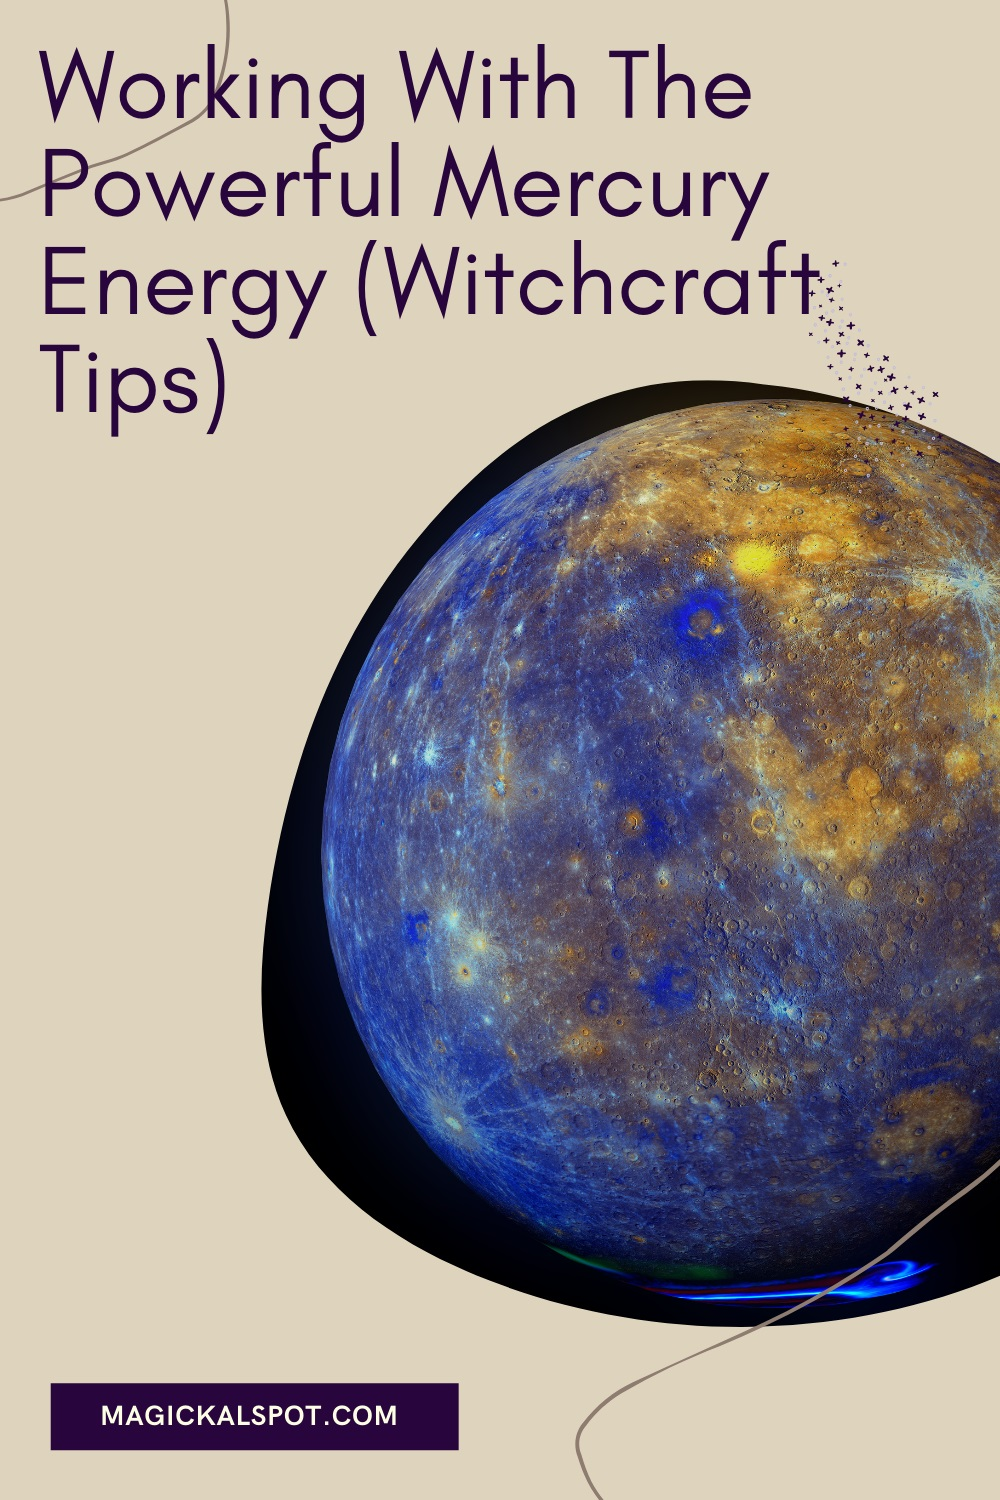 Working With The Powerful Mercury Energy by Magickal Spot